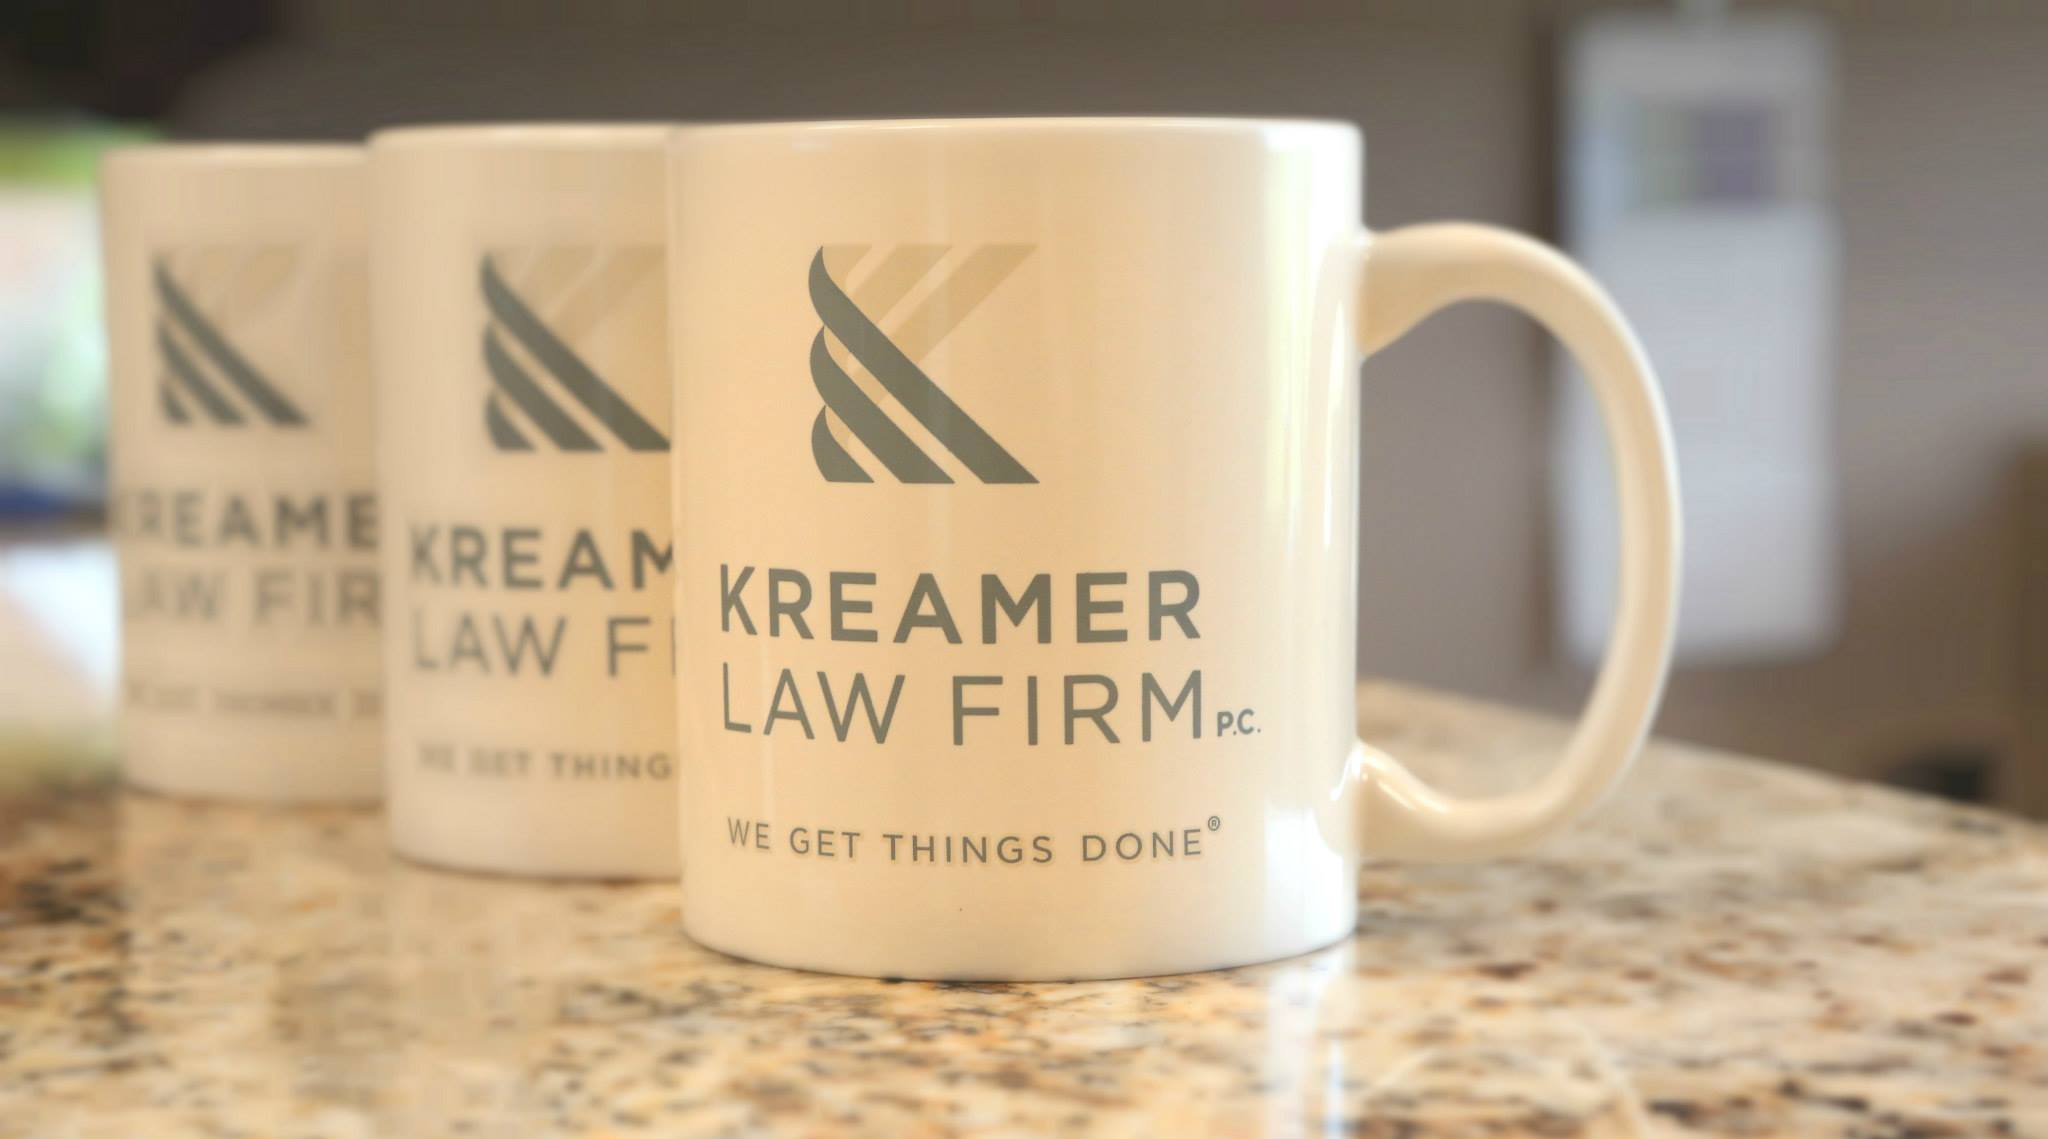 Kreamer Law Firm, P.C. West Des Moines, Iowa